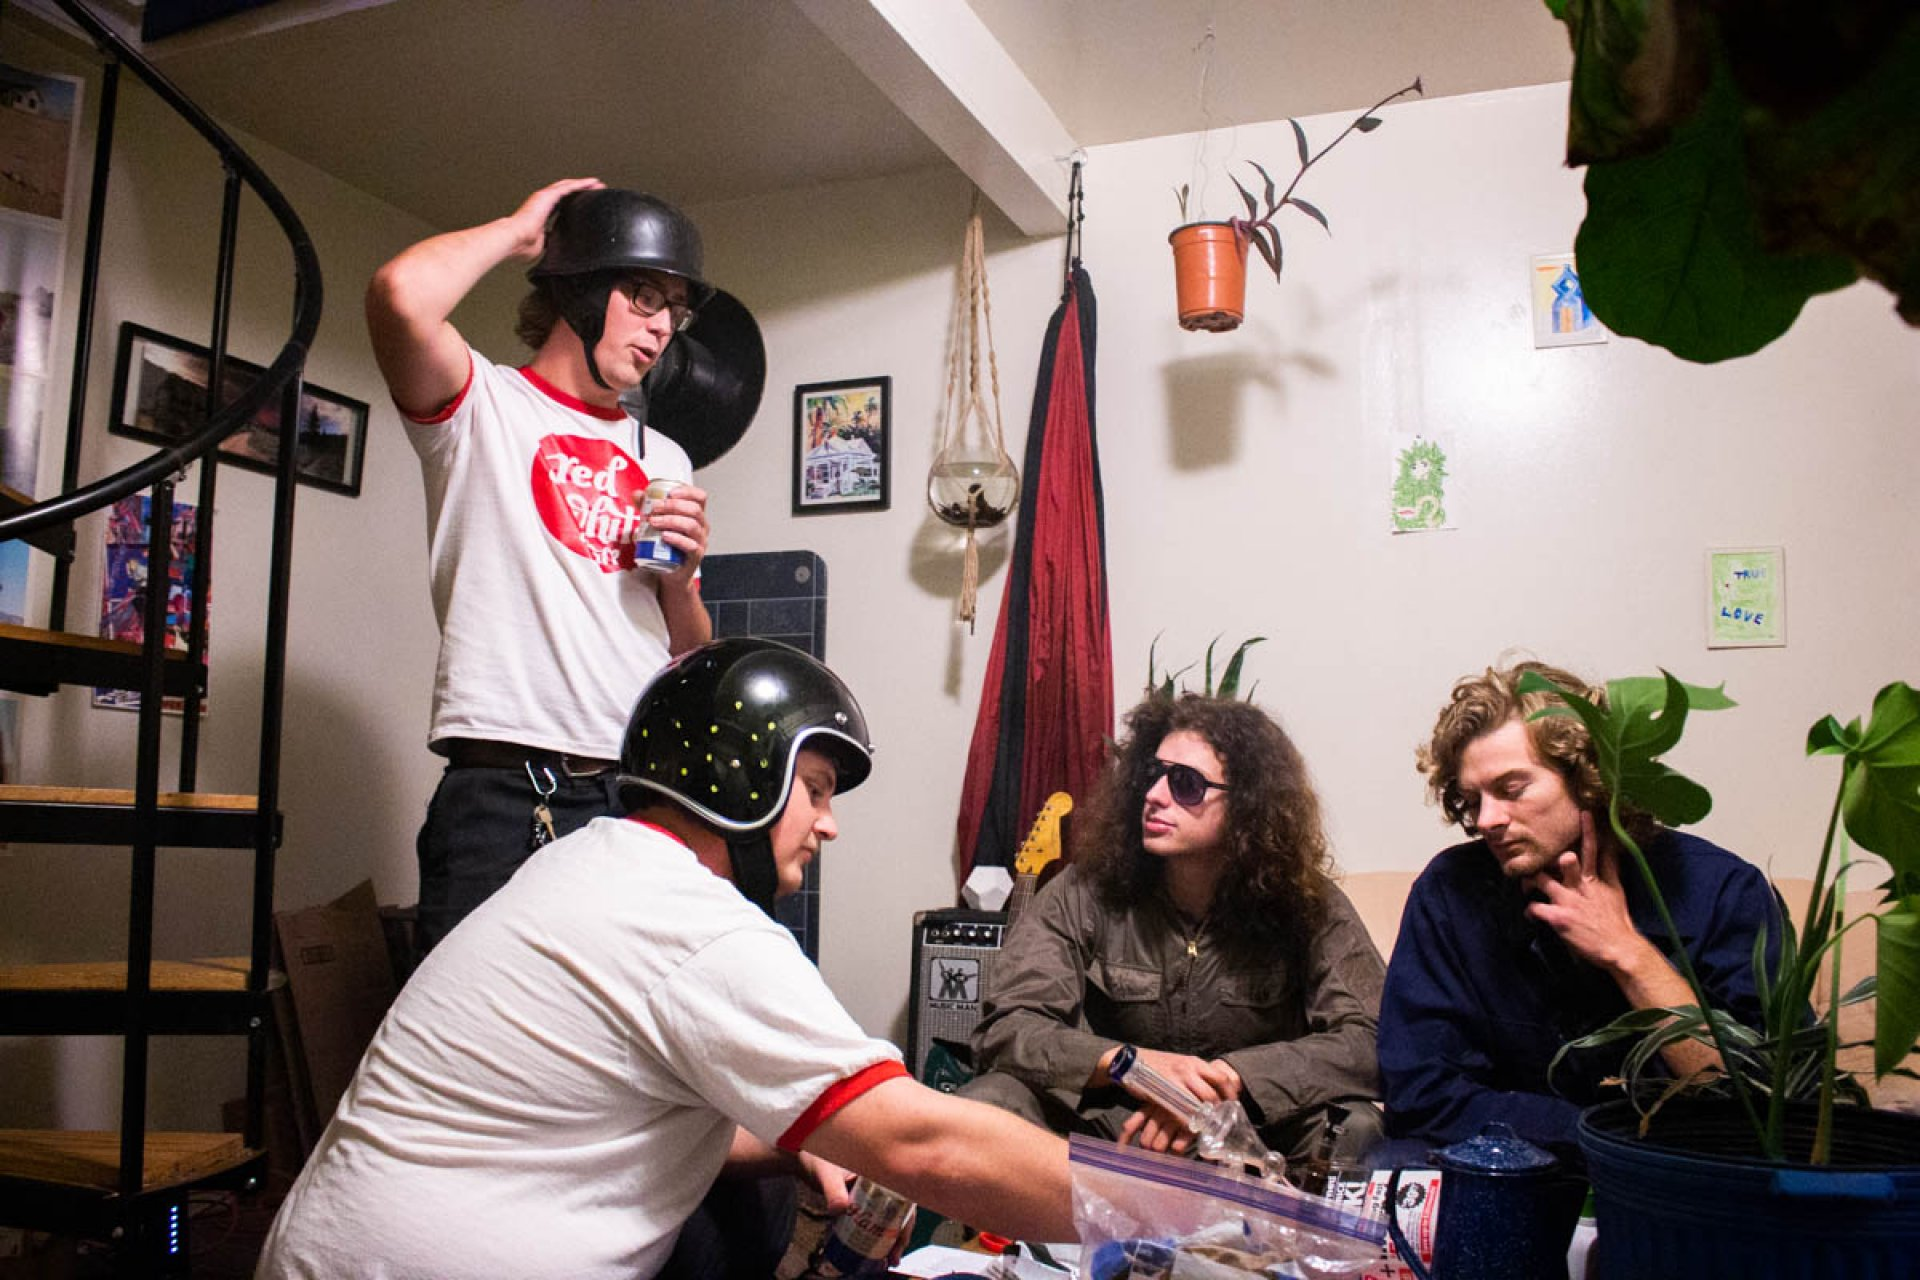 Band members Wyatt Brenner, Willem Kernkamp, Delphin Browne and Quonton Waull sit around a table and play games. | Photo by Jerame Saunders